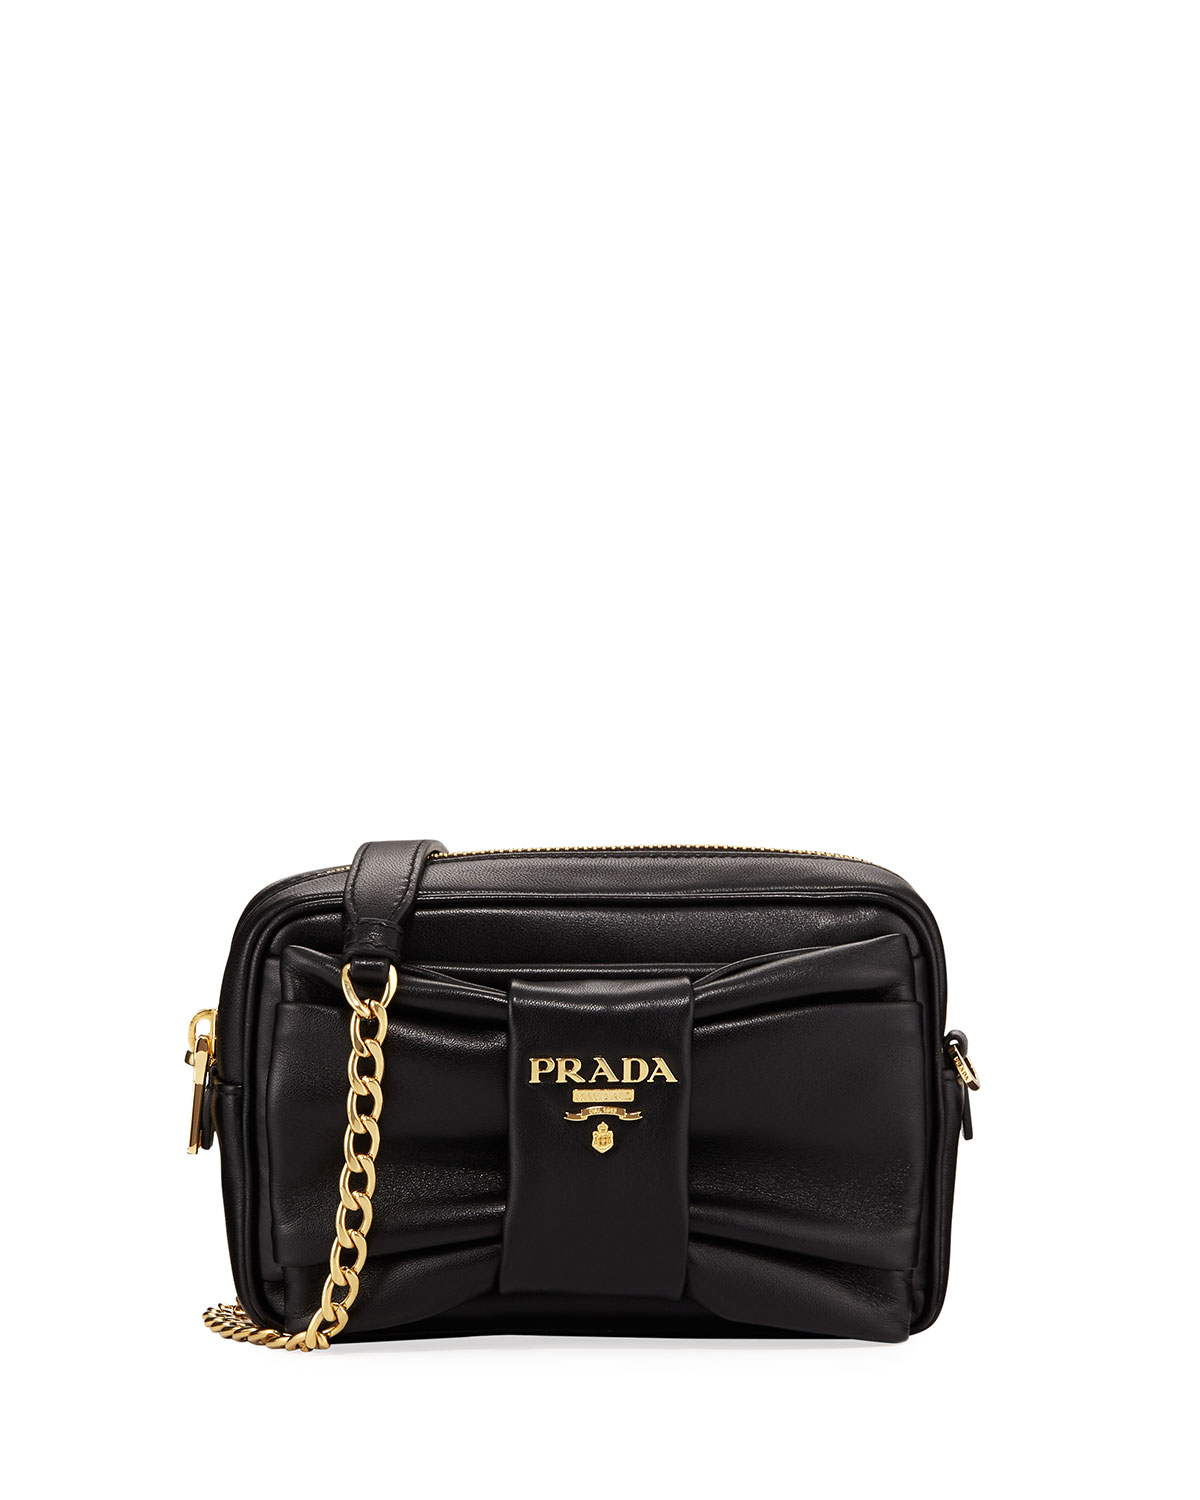 34782c09e5ff Prada Small Napa Leather Shoulder Bag | Neiman Marcus